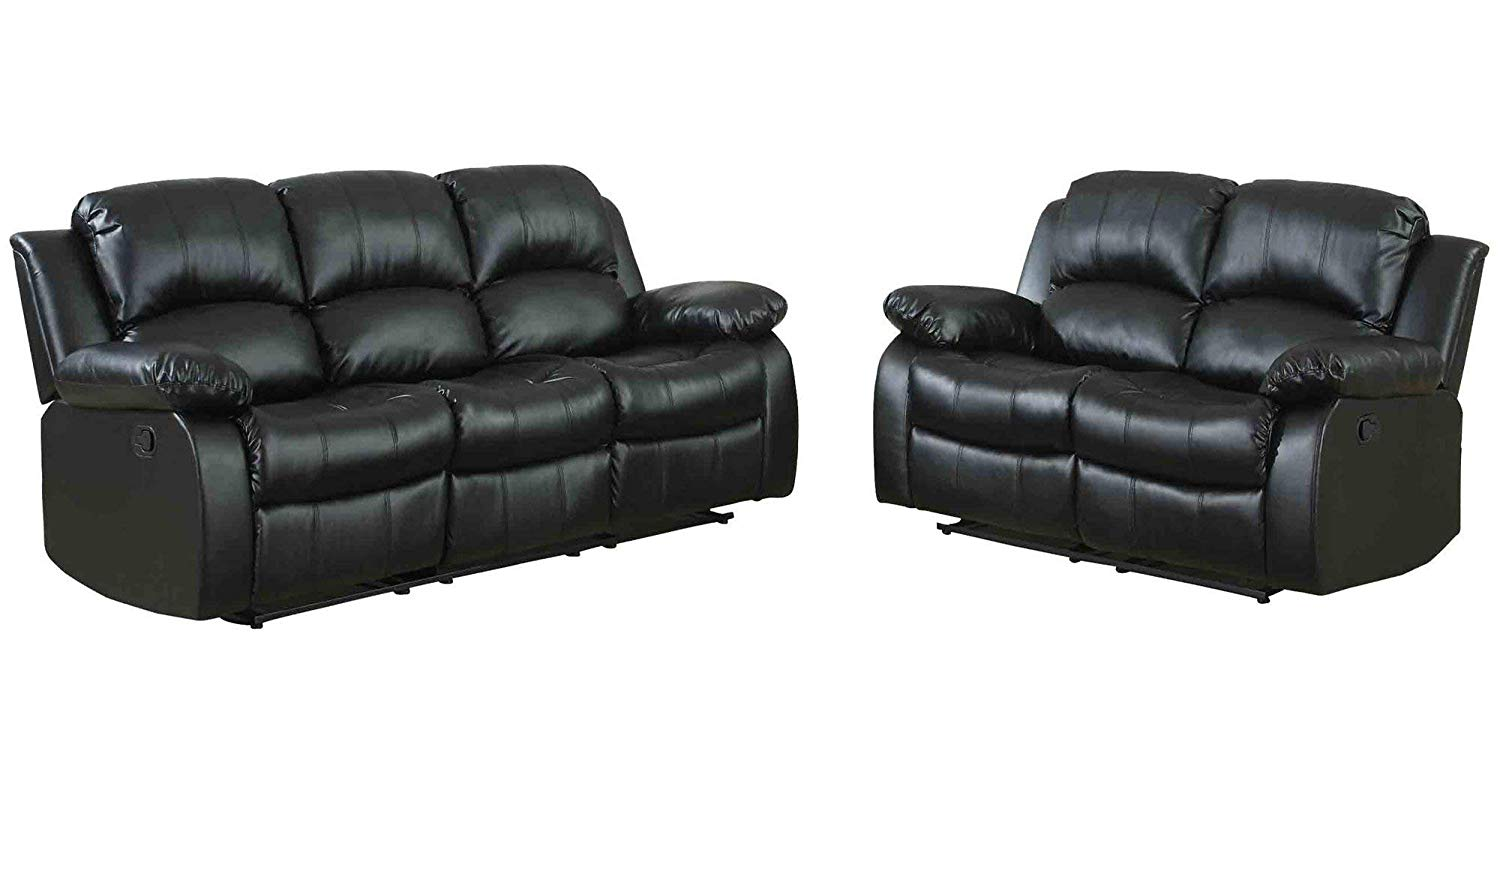 Cheap 2 Seat Leather Reclining Sofa Find 2 Seat Leather Reclining